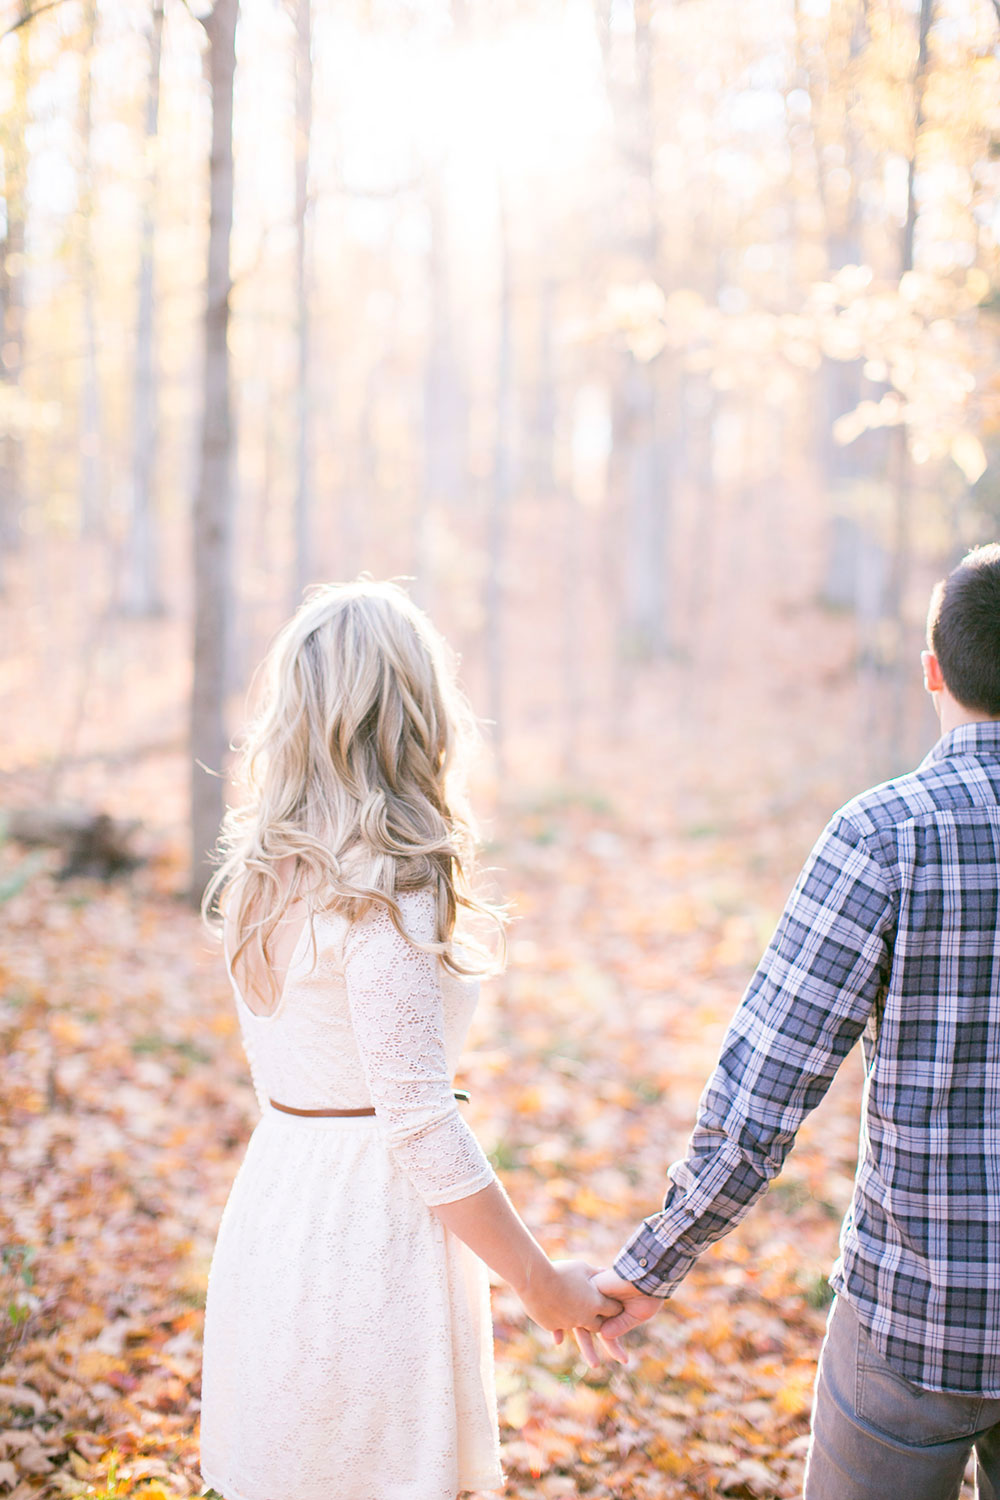 Albion-Hills-Conservation-Park-engagement-session-caledon-photo-by-philosophy-studios-eva-derrick-photography-002.jpg